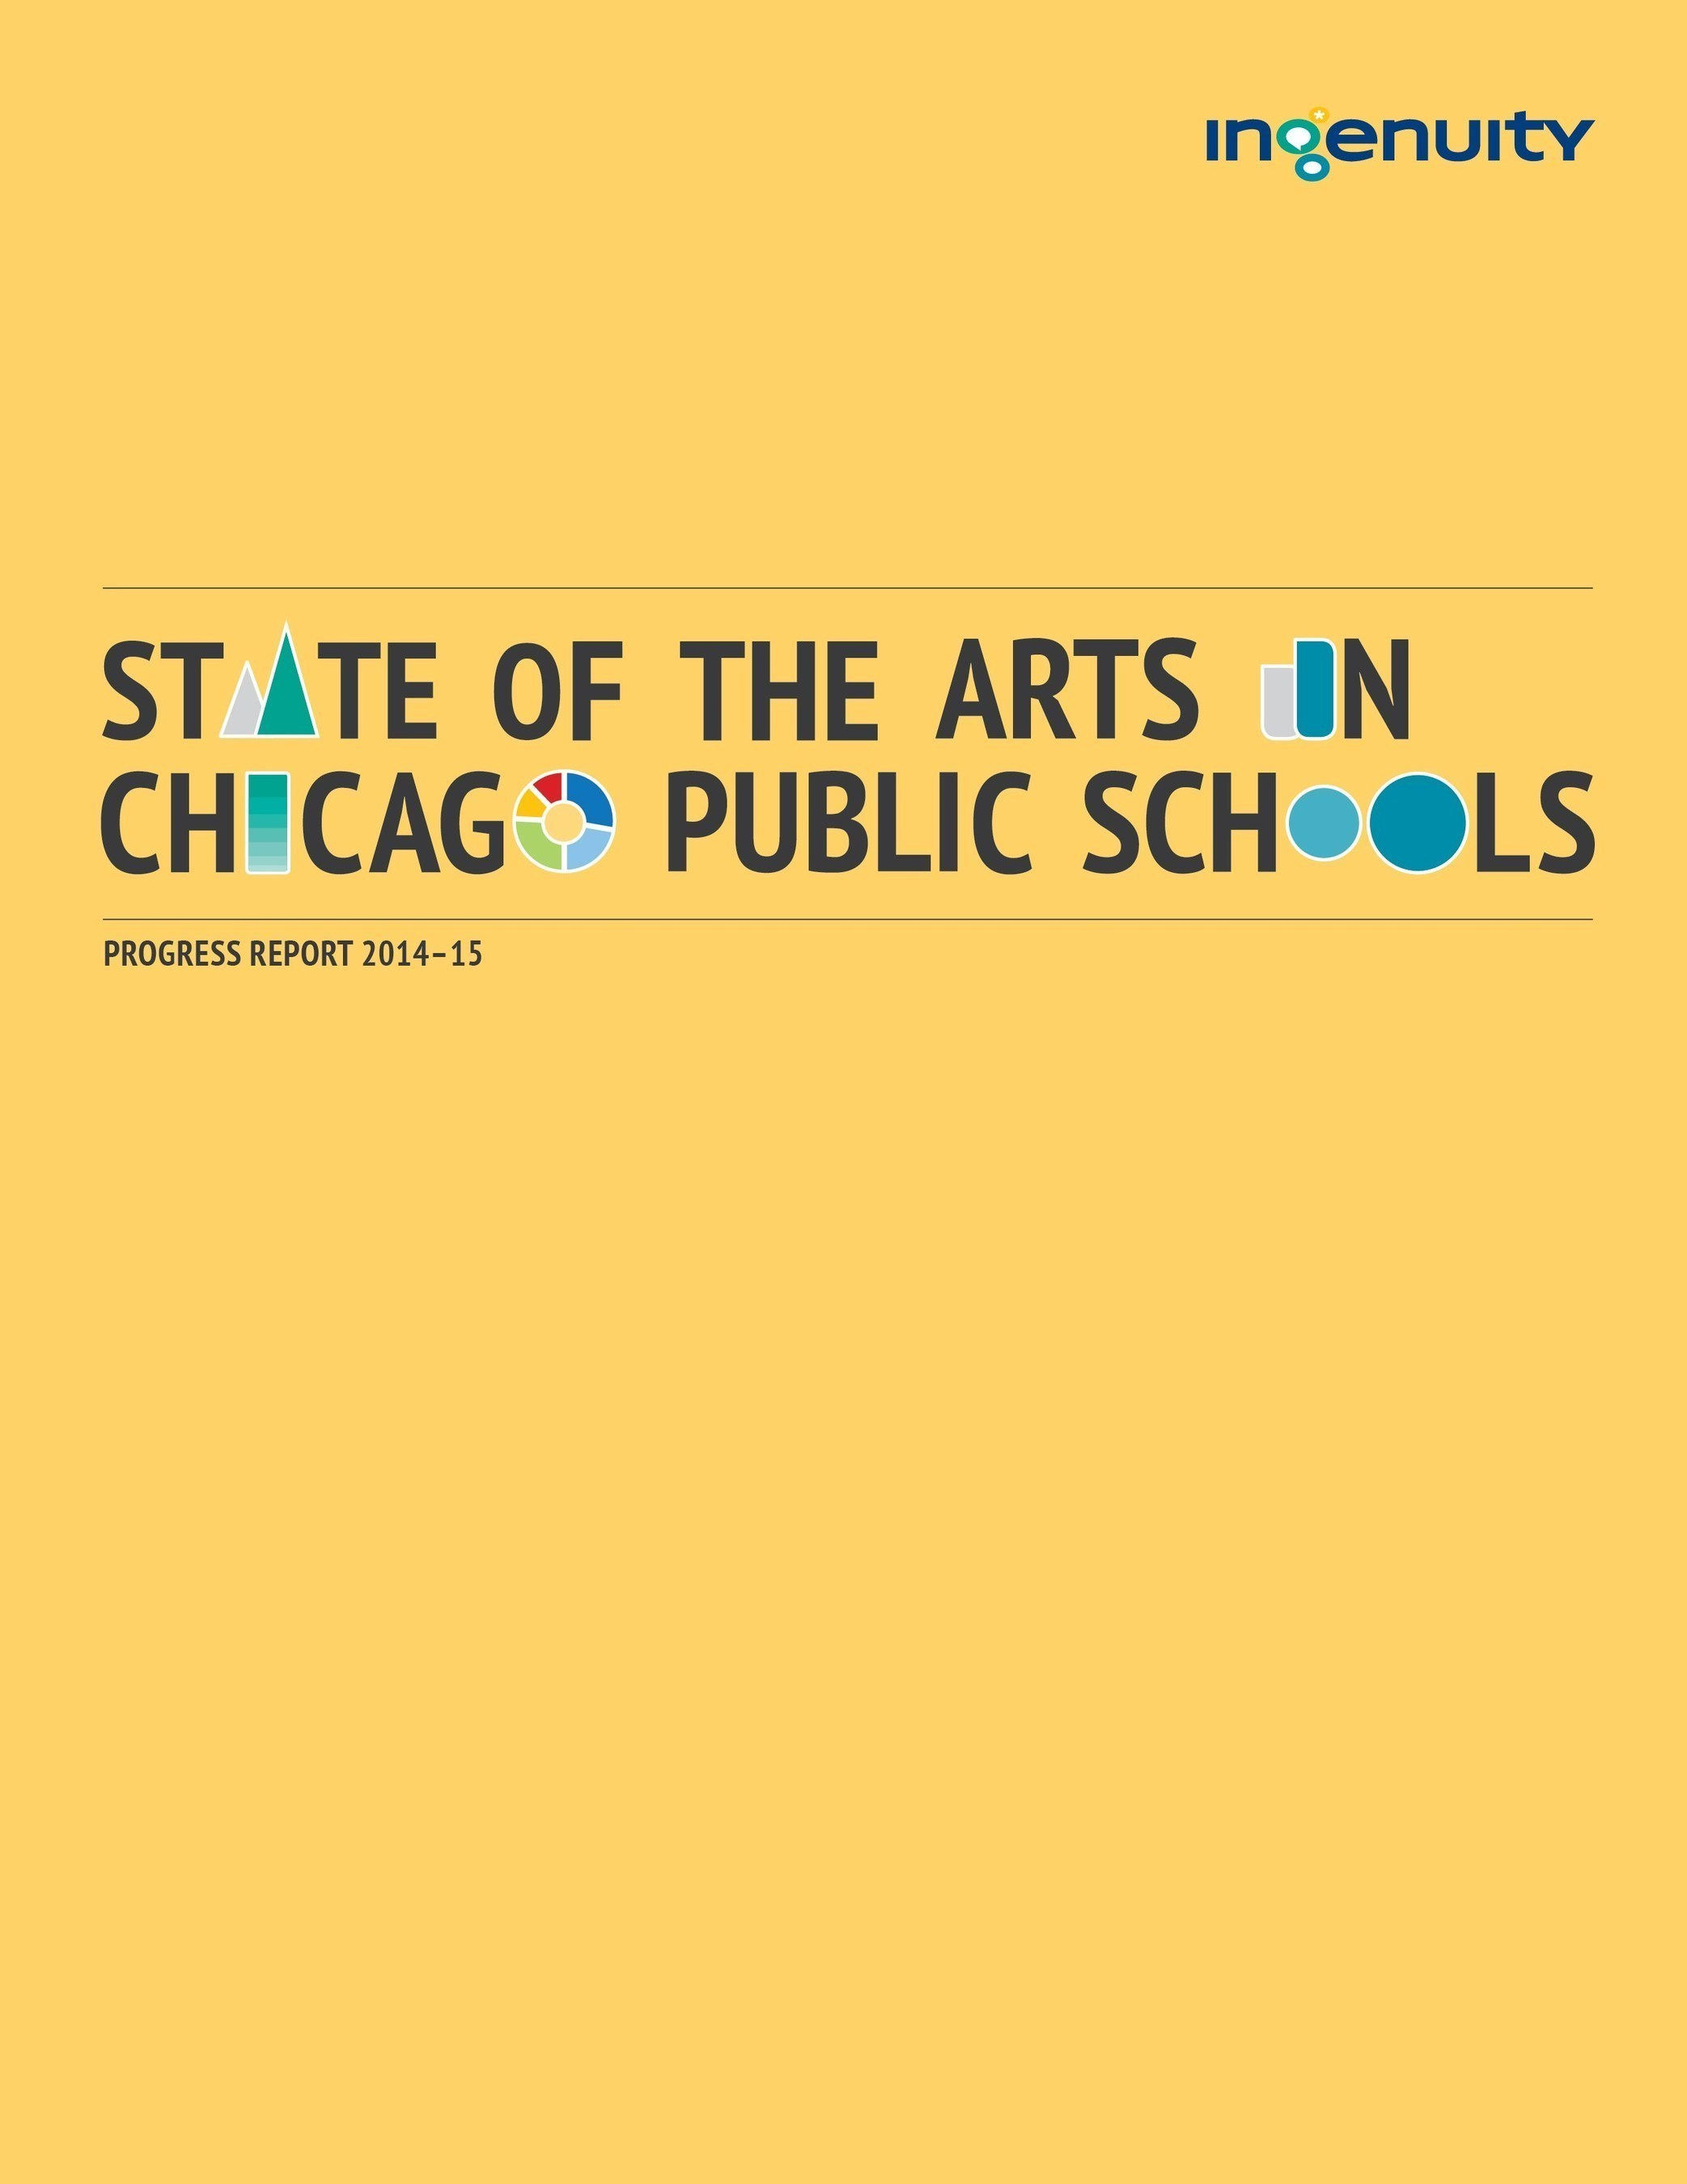 Ingenuity's State of the Arts in Chicago Public Schools Progress Report